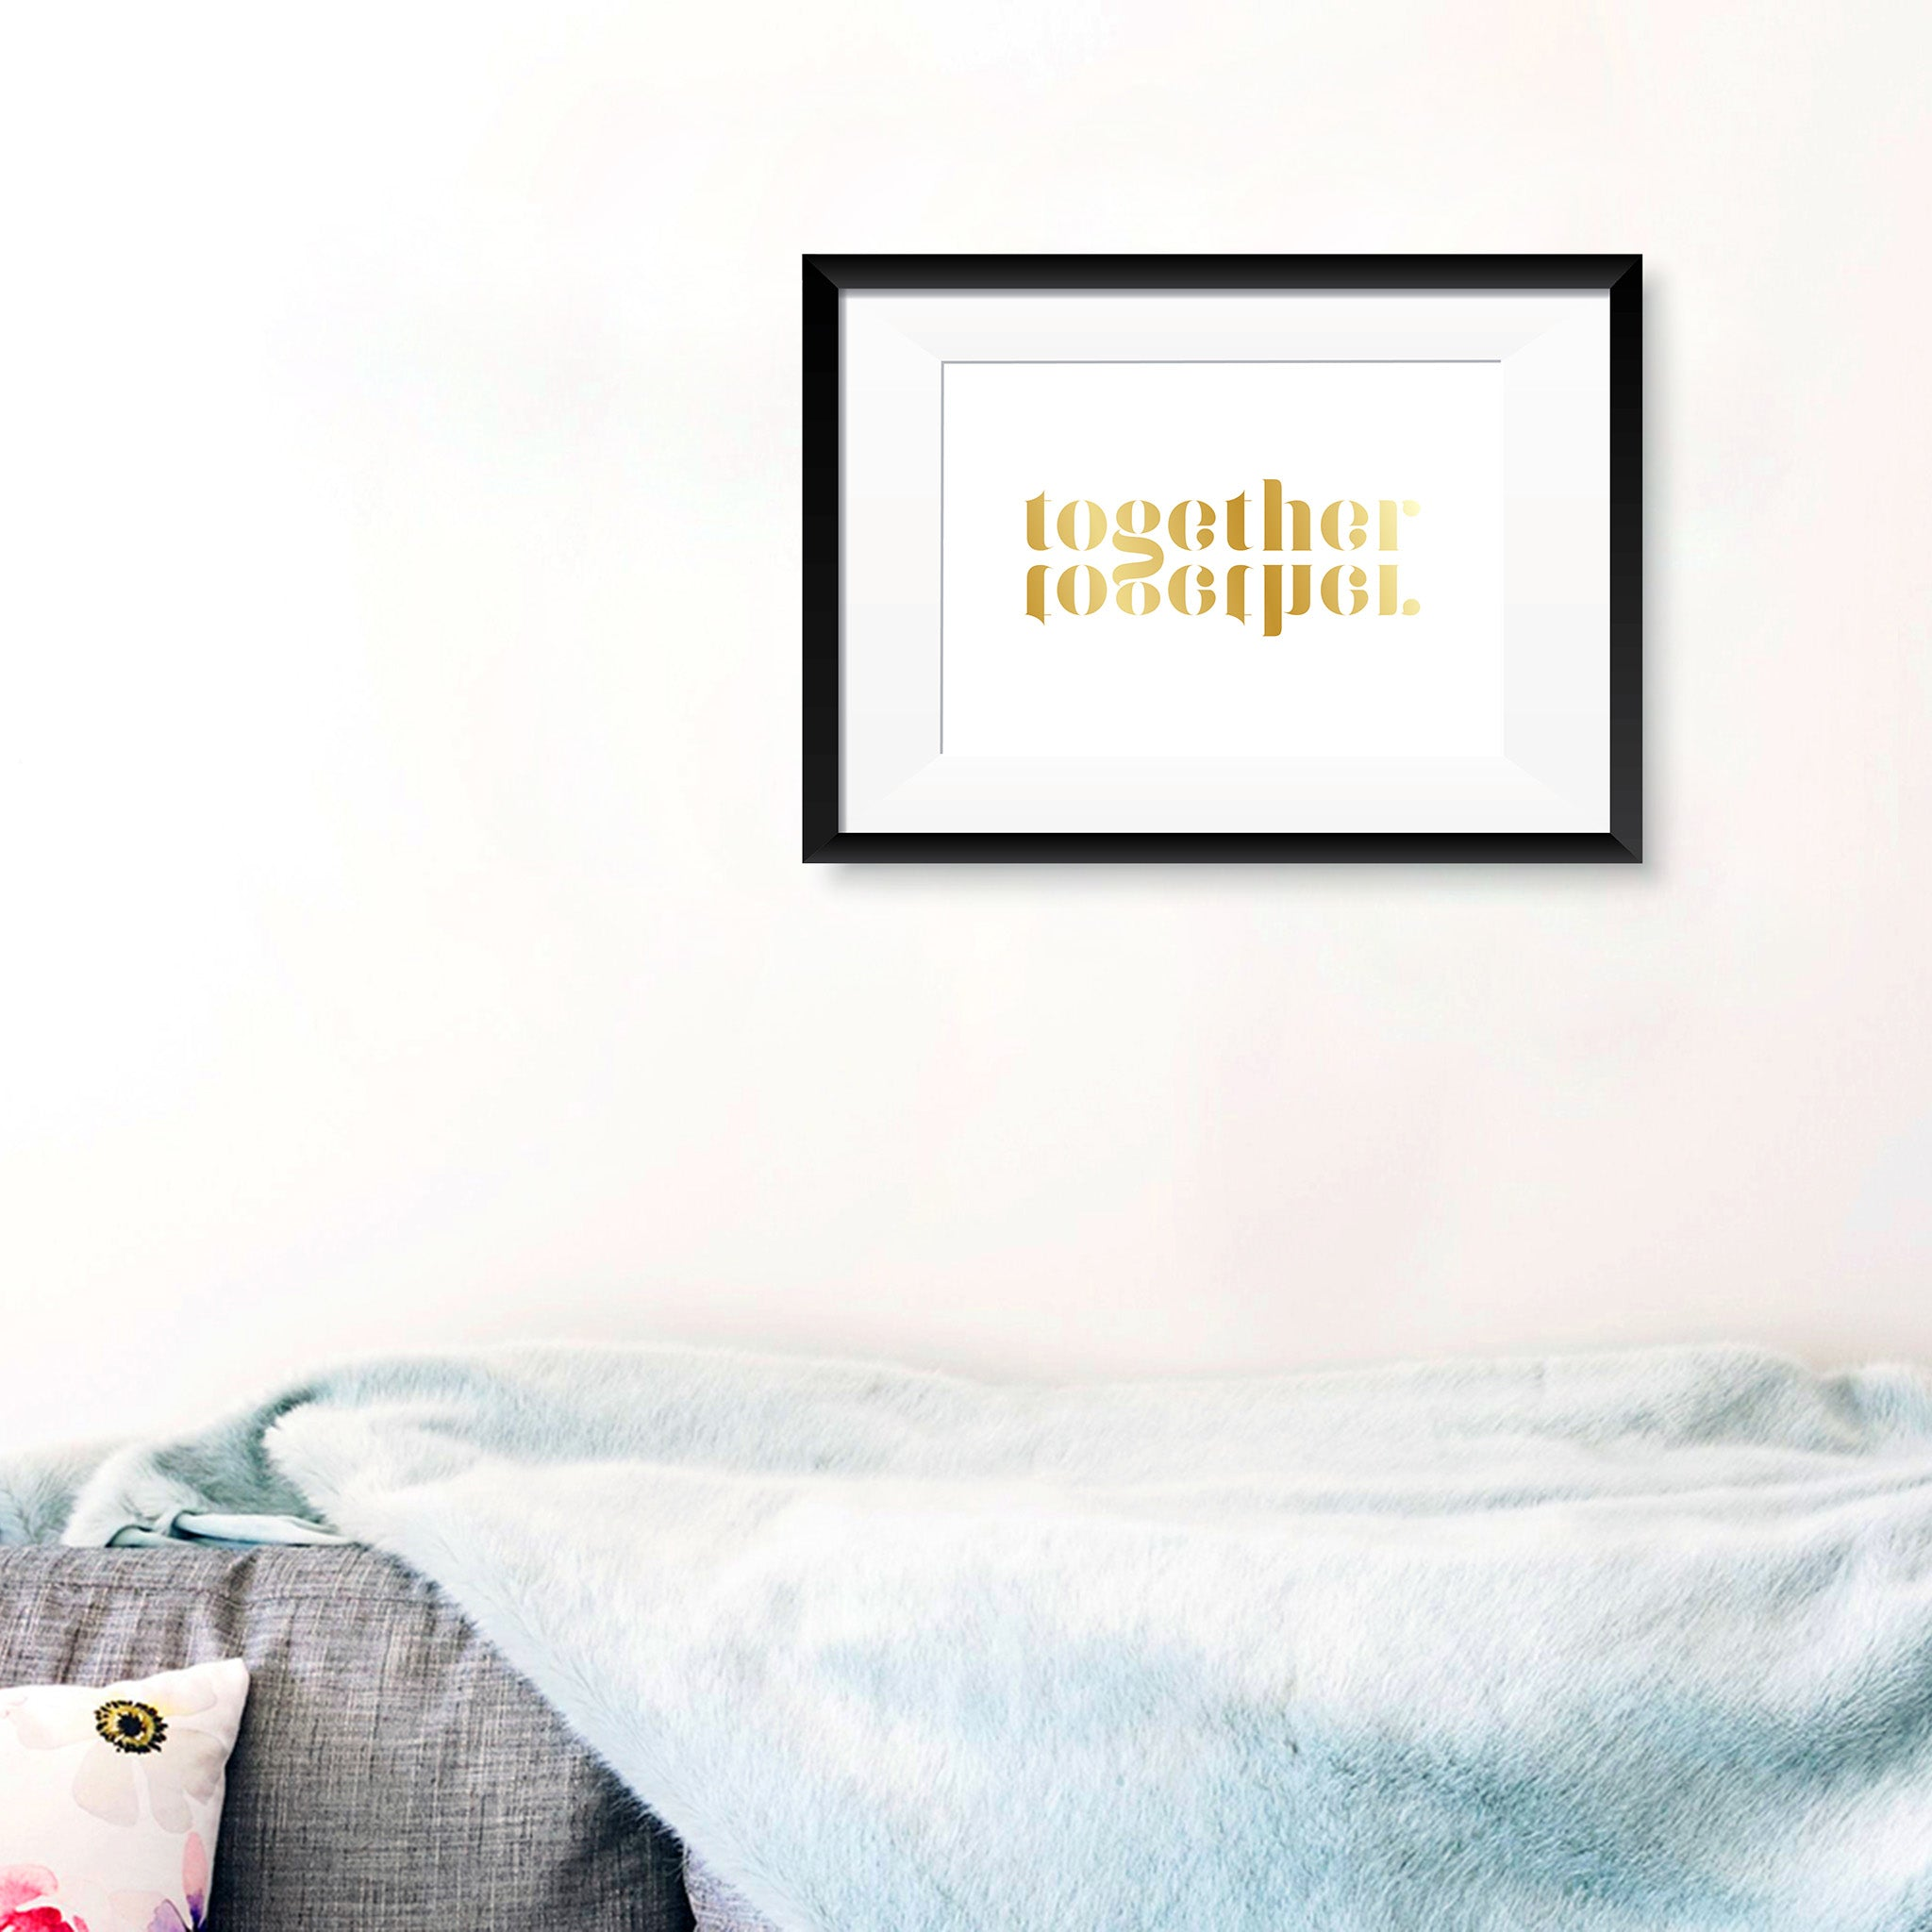 'Together' Reflection Foil Print - Oregano Designs